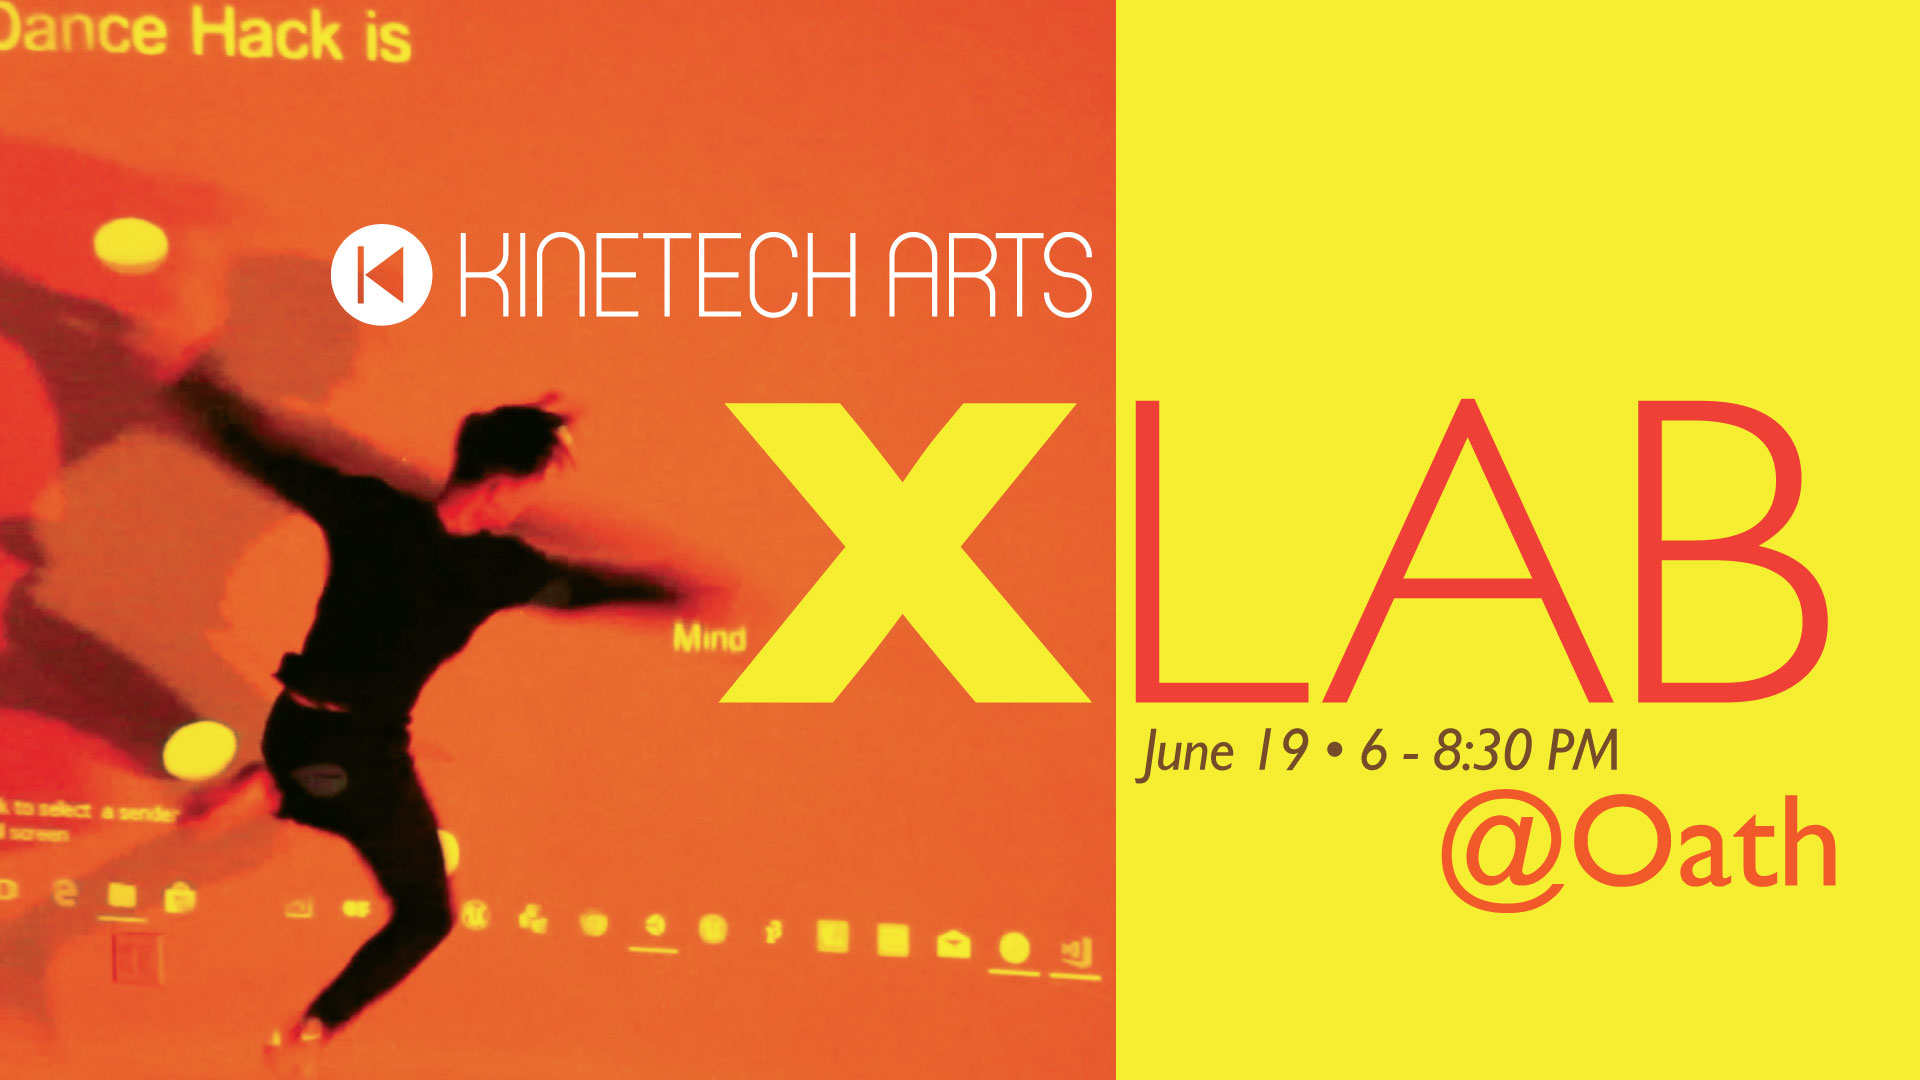 XLab is a series of events, produced in partnership with like-minded organizations, where people of various disciplines get together to explore the intersection of art, science, and technology. XLab experiments with webXR, motion capture devices, digital assistants, body movement etc. Admission is free.